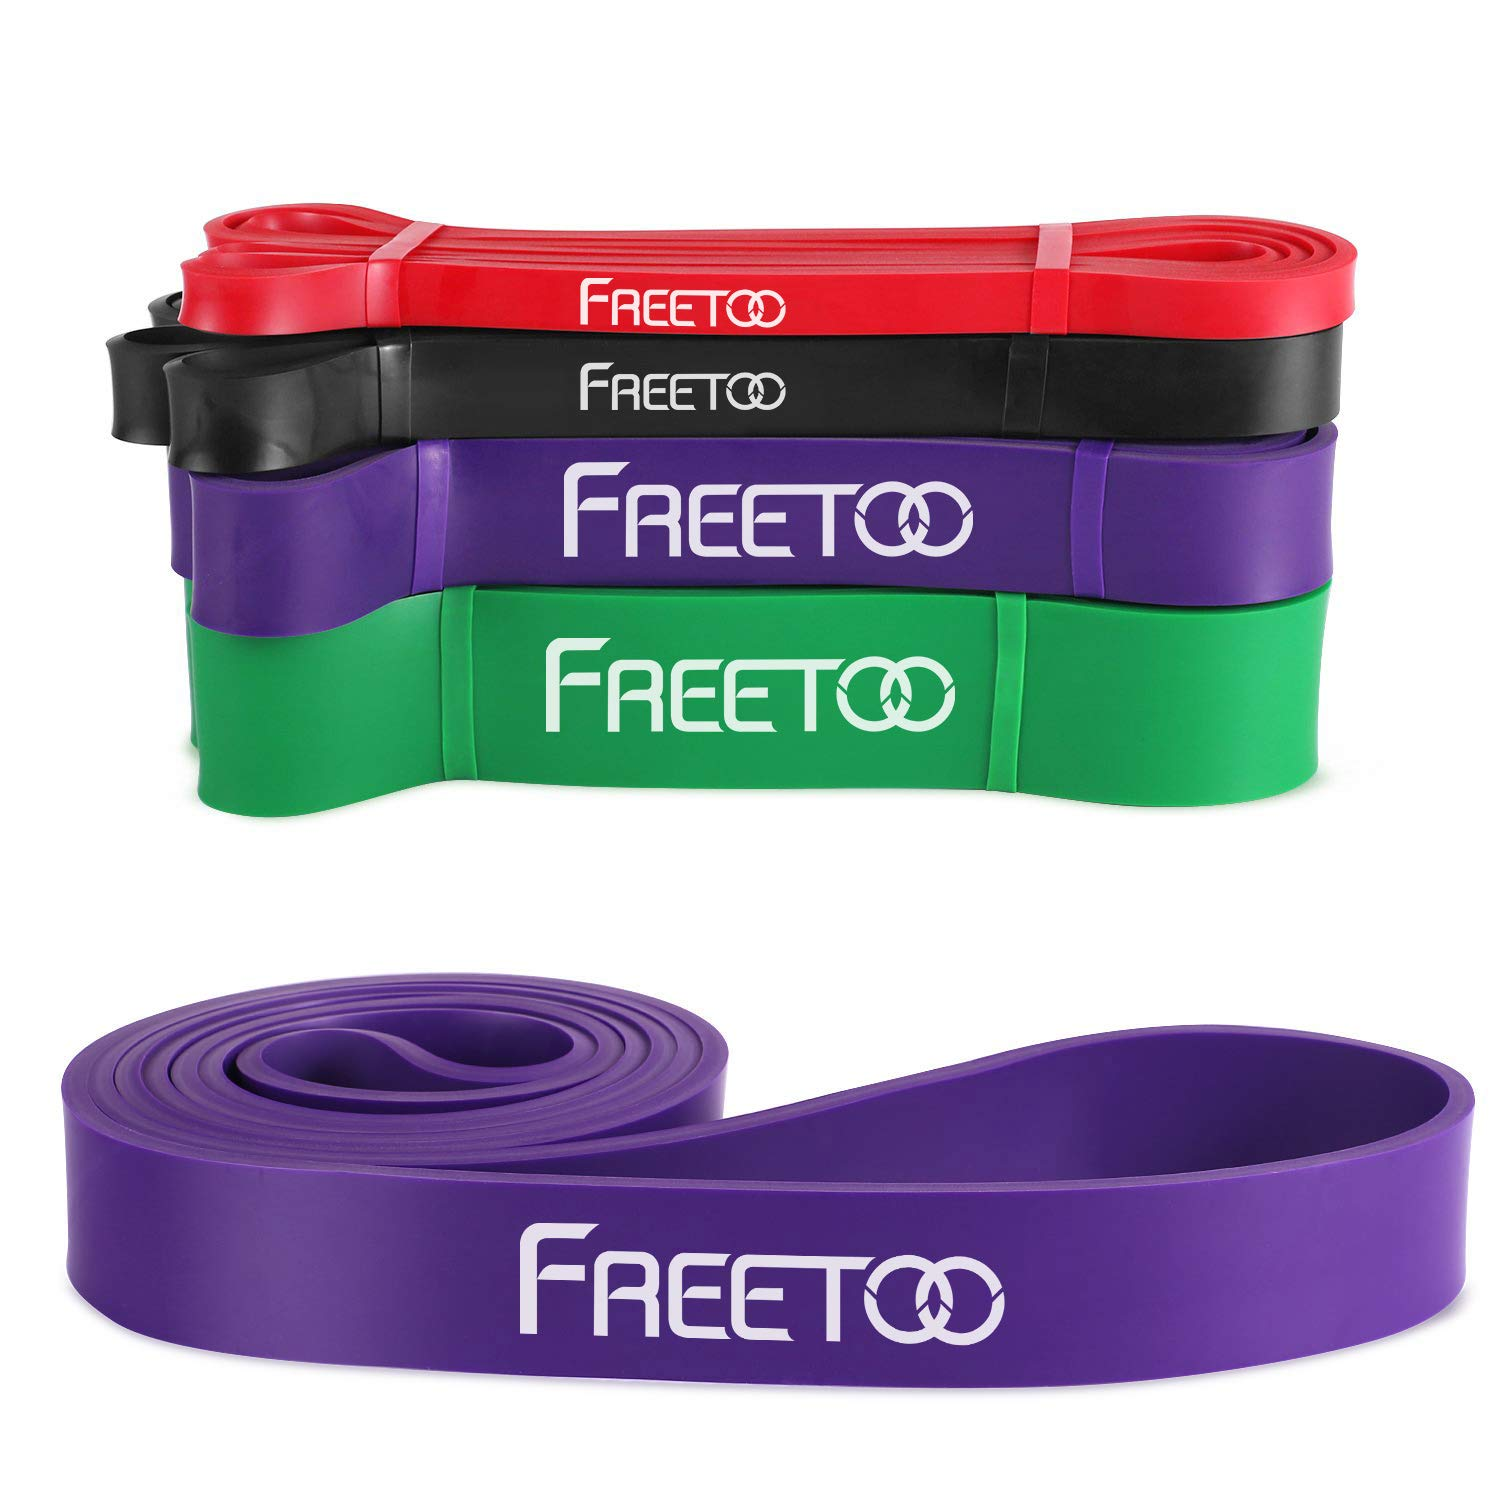 FREETOO Pull Up Assist Bands -Workout Resistance Bands for Body Stretching, Exercise Bands with 100% Natural Latex Stretch Bands for Pilates,Resistance Training,Cross Fitness,Yoga and Home Fitness by FREETOO